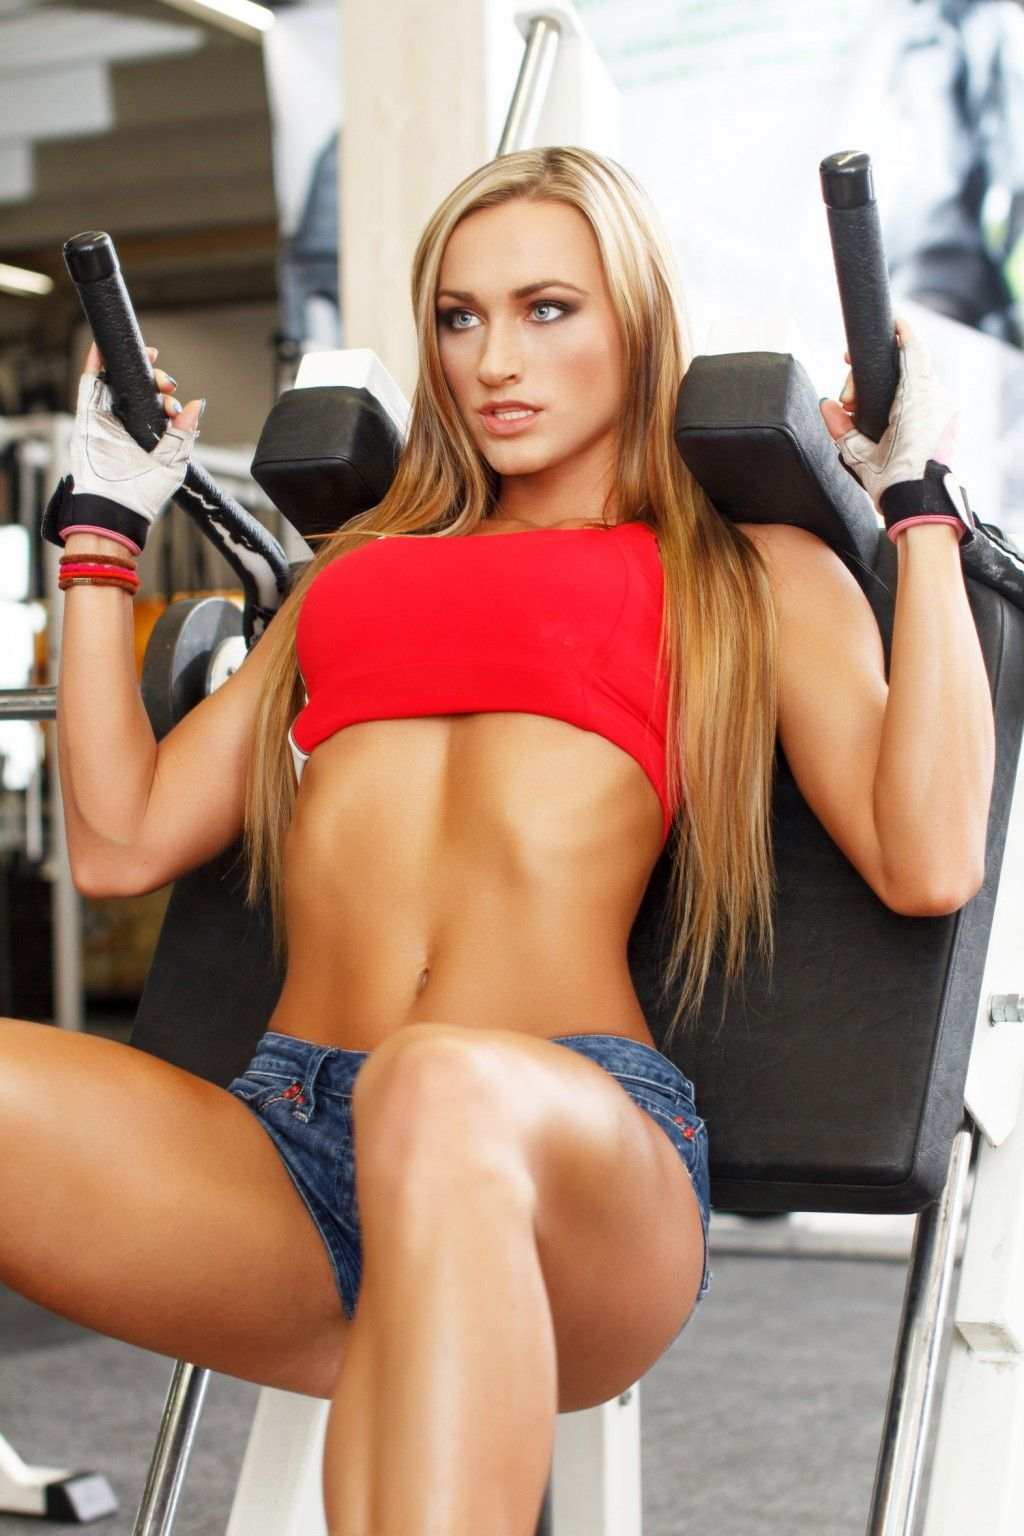 1000+ images about Legs/ butt on Pinterest | Squats, Glutes and ...